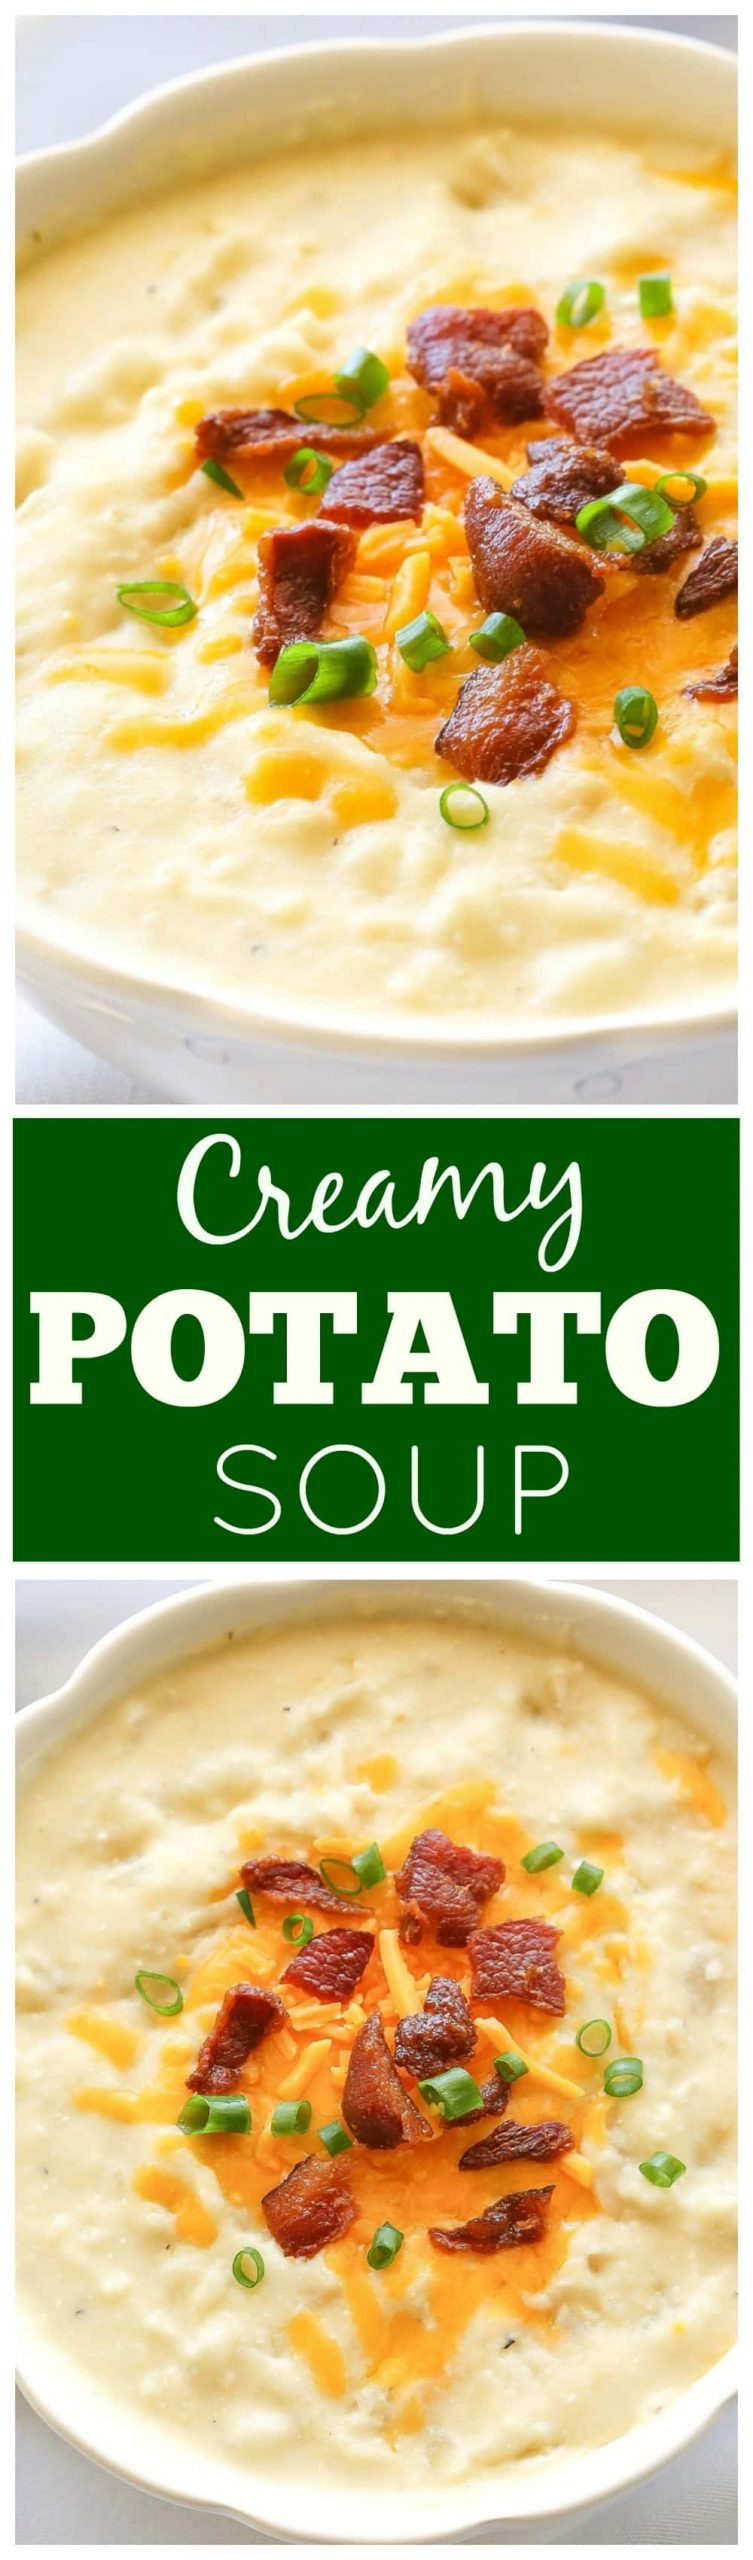 Crockpot Potato Soup - a slow cooker soup that is so easy! Top with bacon, cheese, and green onions for the ultimate potato soup. #slowcooker #crockpot #potato #soup #recipe #easy #dinner